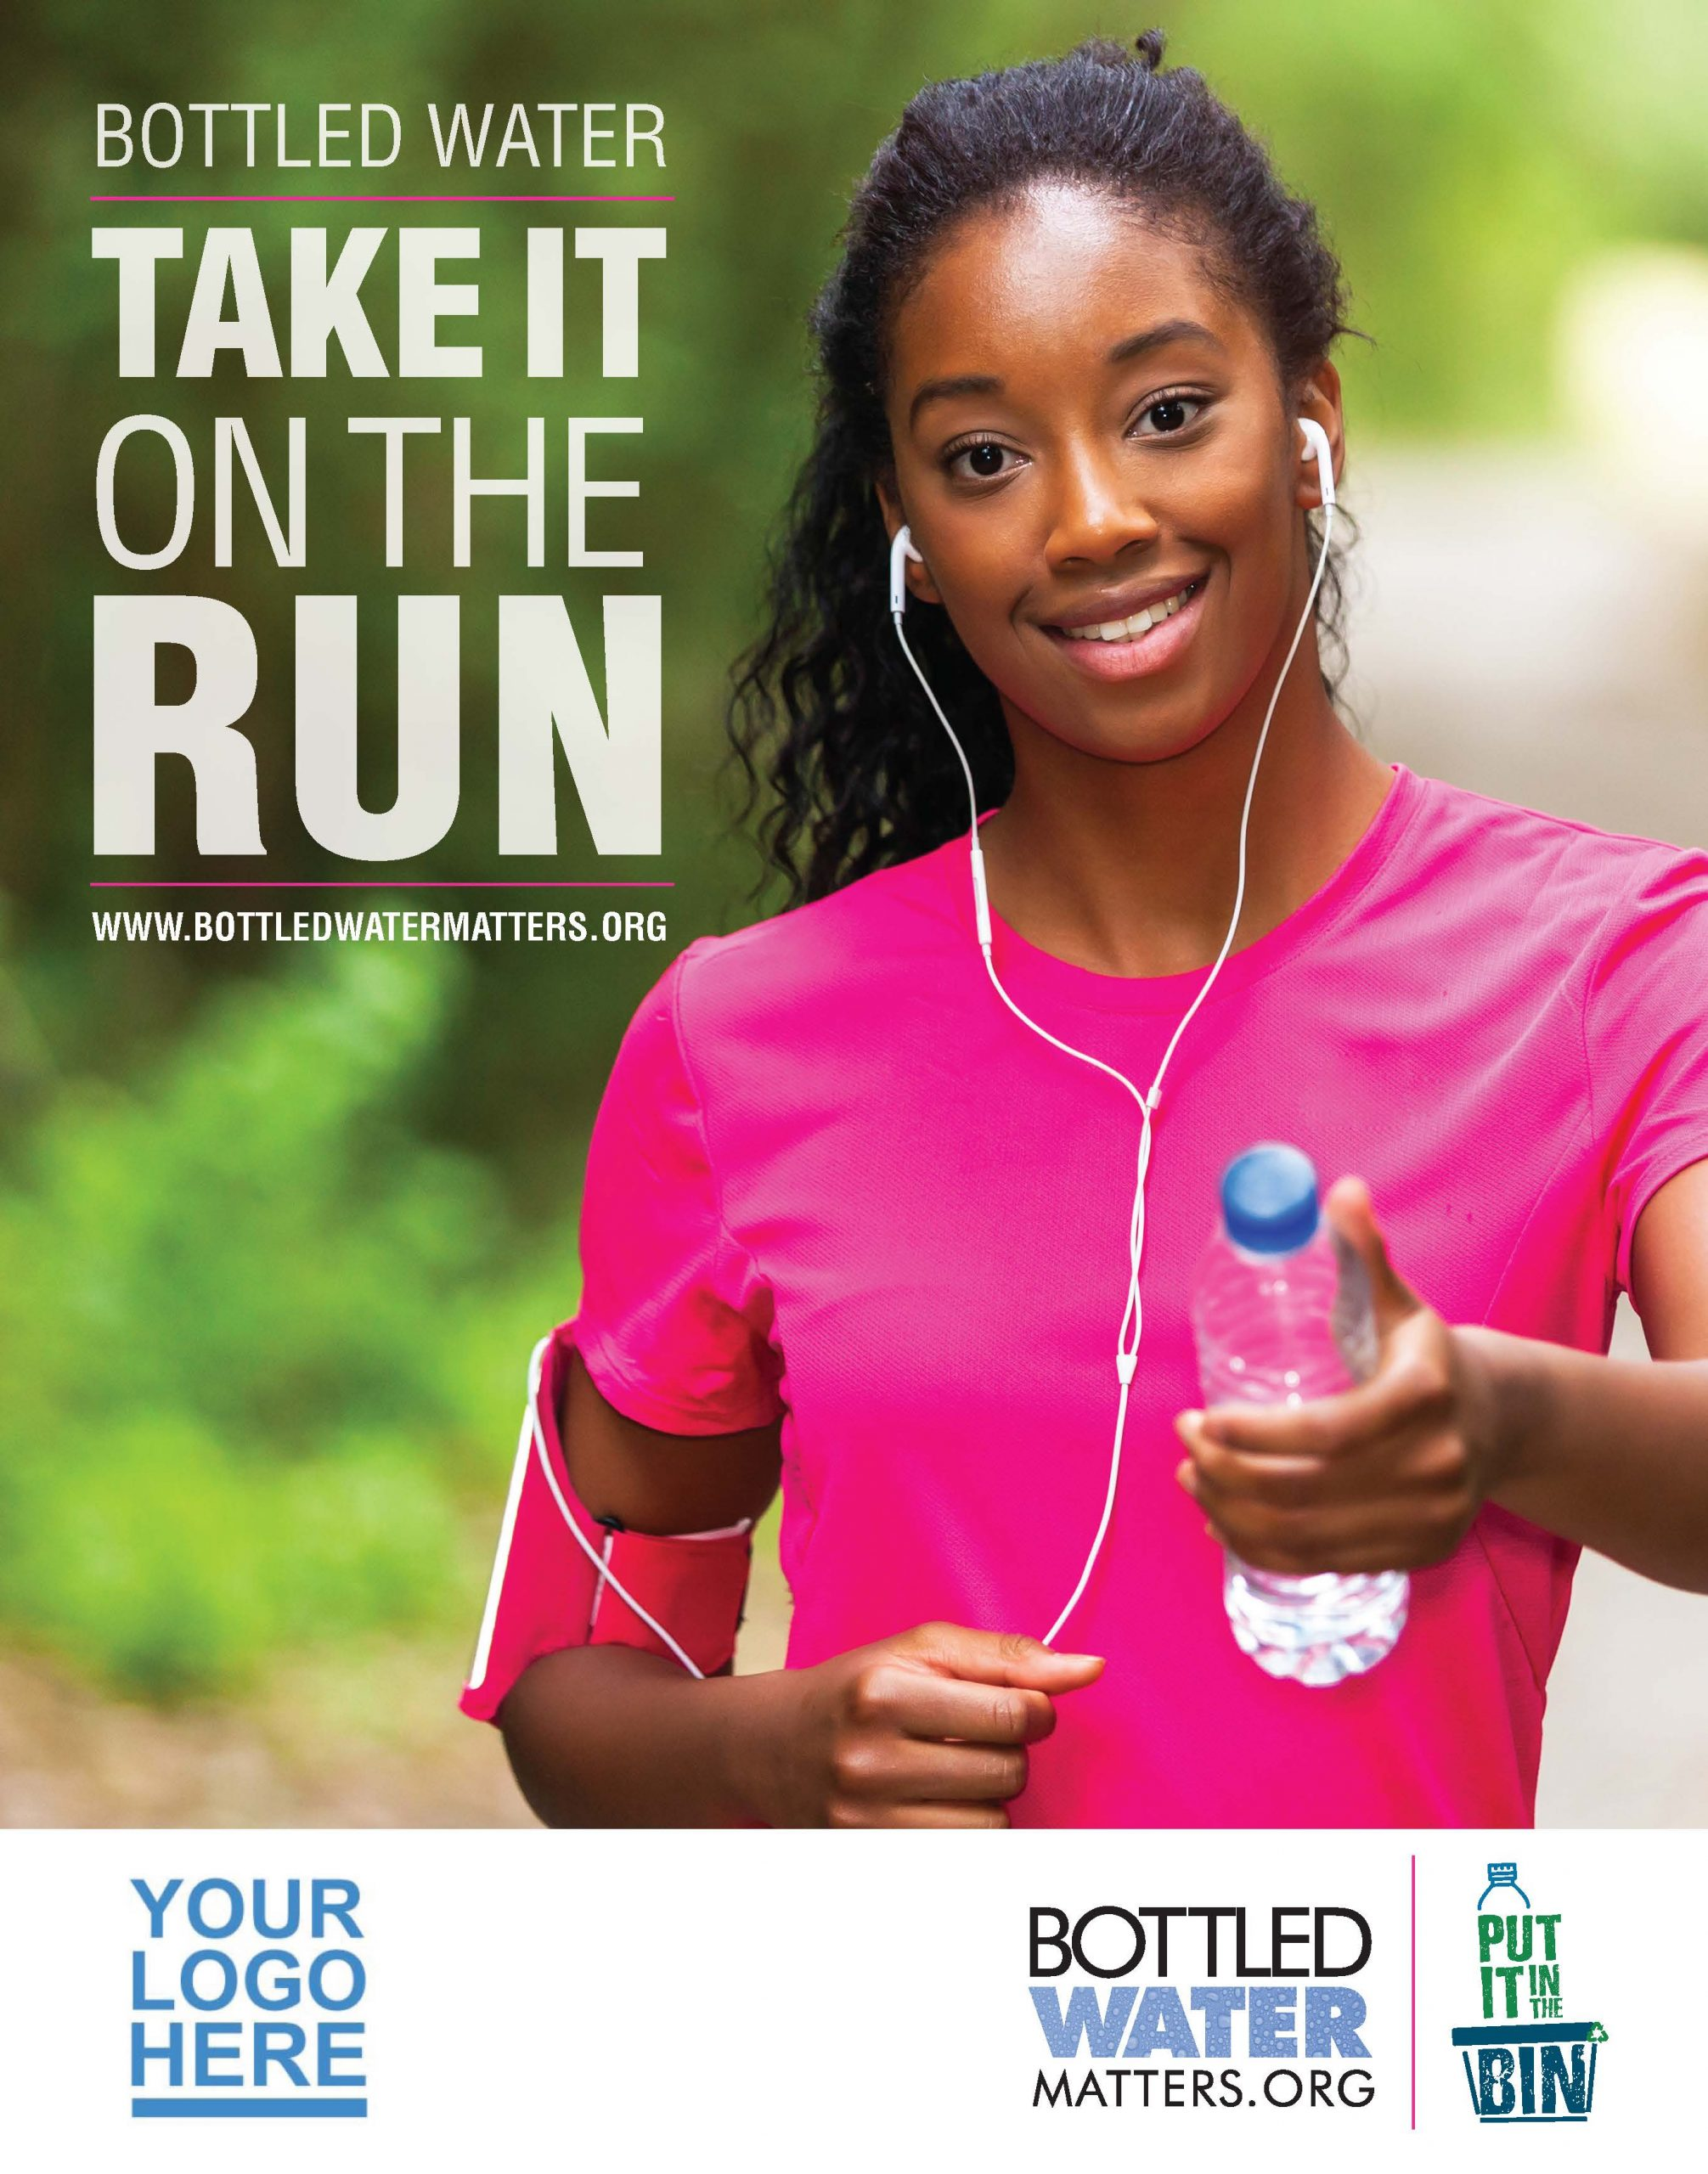 TakeItOnTheRun Member Scaled, Bottled Water | IBWA | Bottled Water